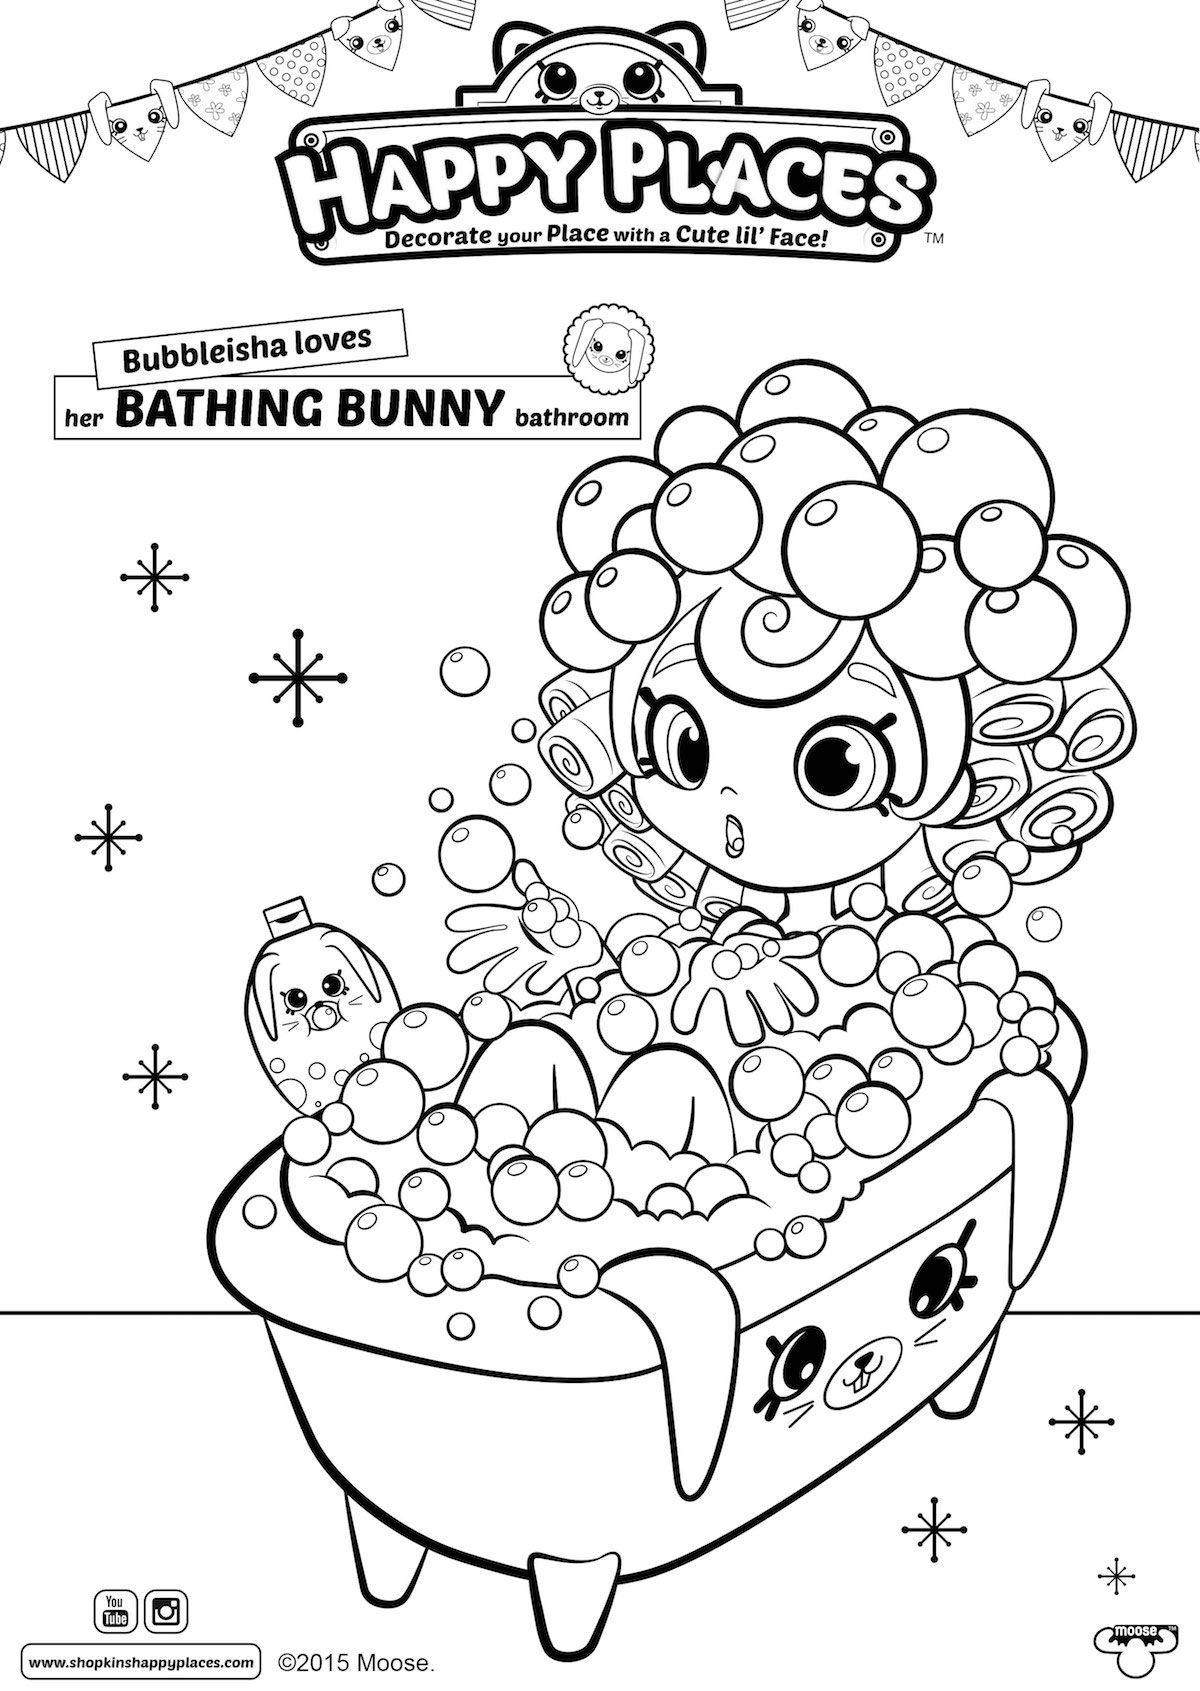 Happy Places Prints Download Happy Places Colouring Pages Games Door Hangers Shopkin Coloring Pages Shopkins Colouring Pages Disney Princess Coloring Pages